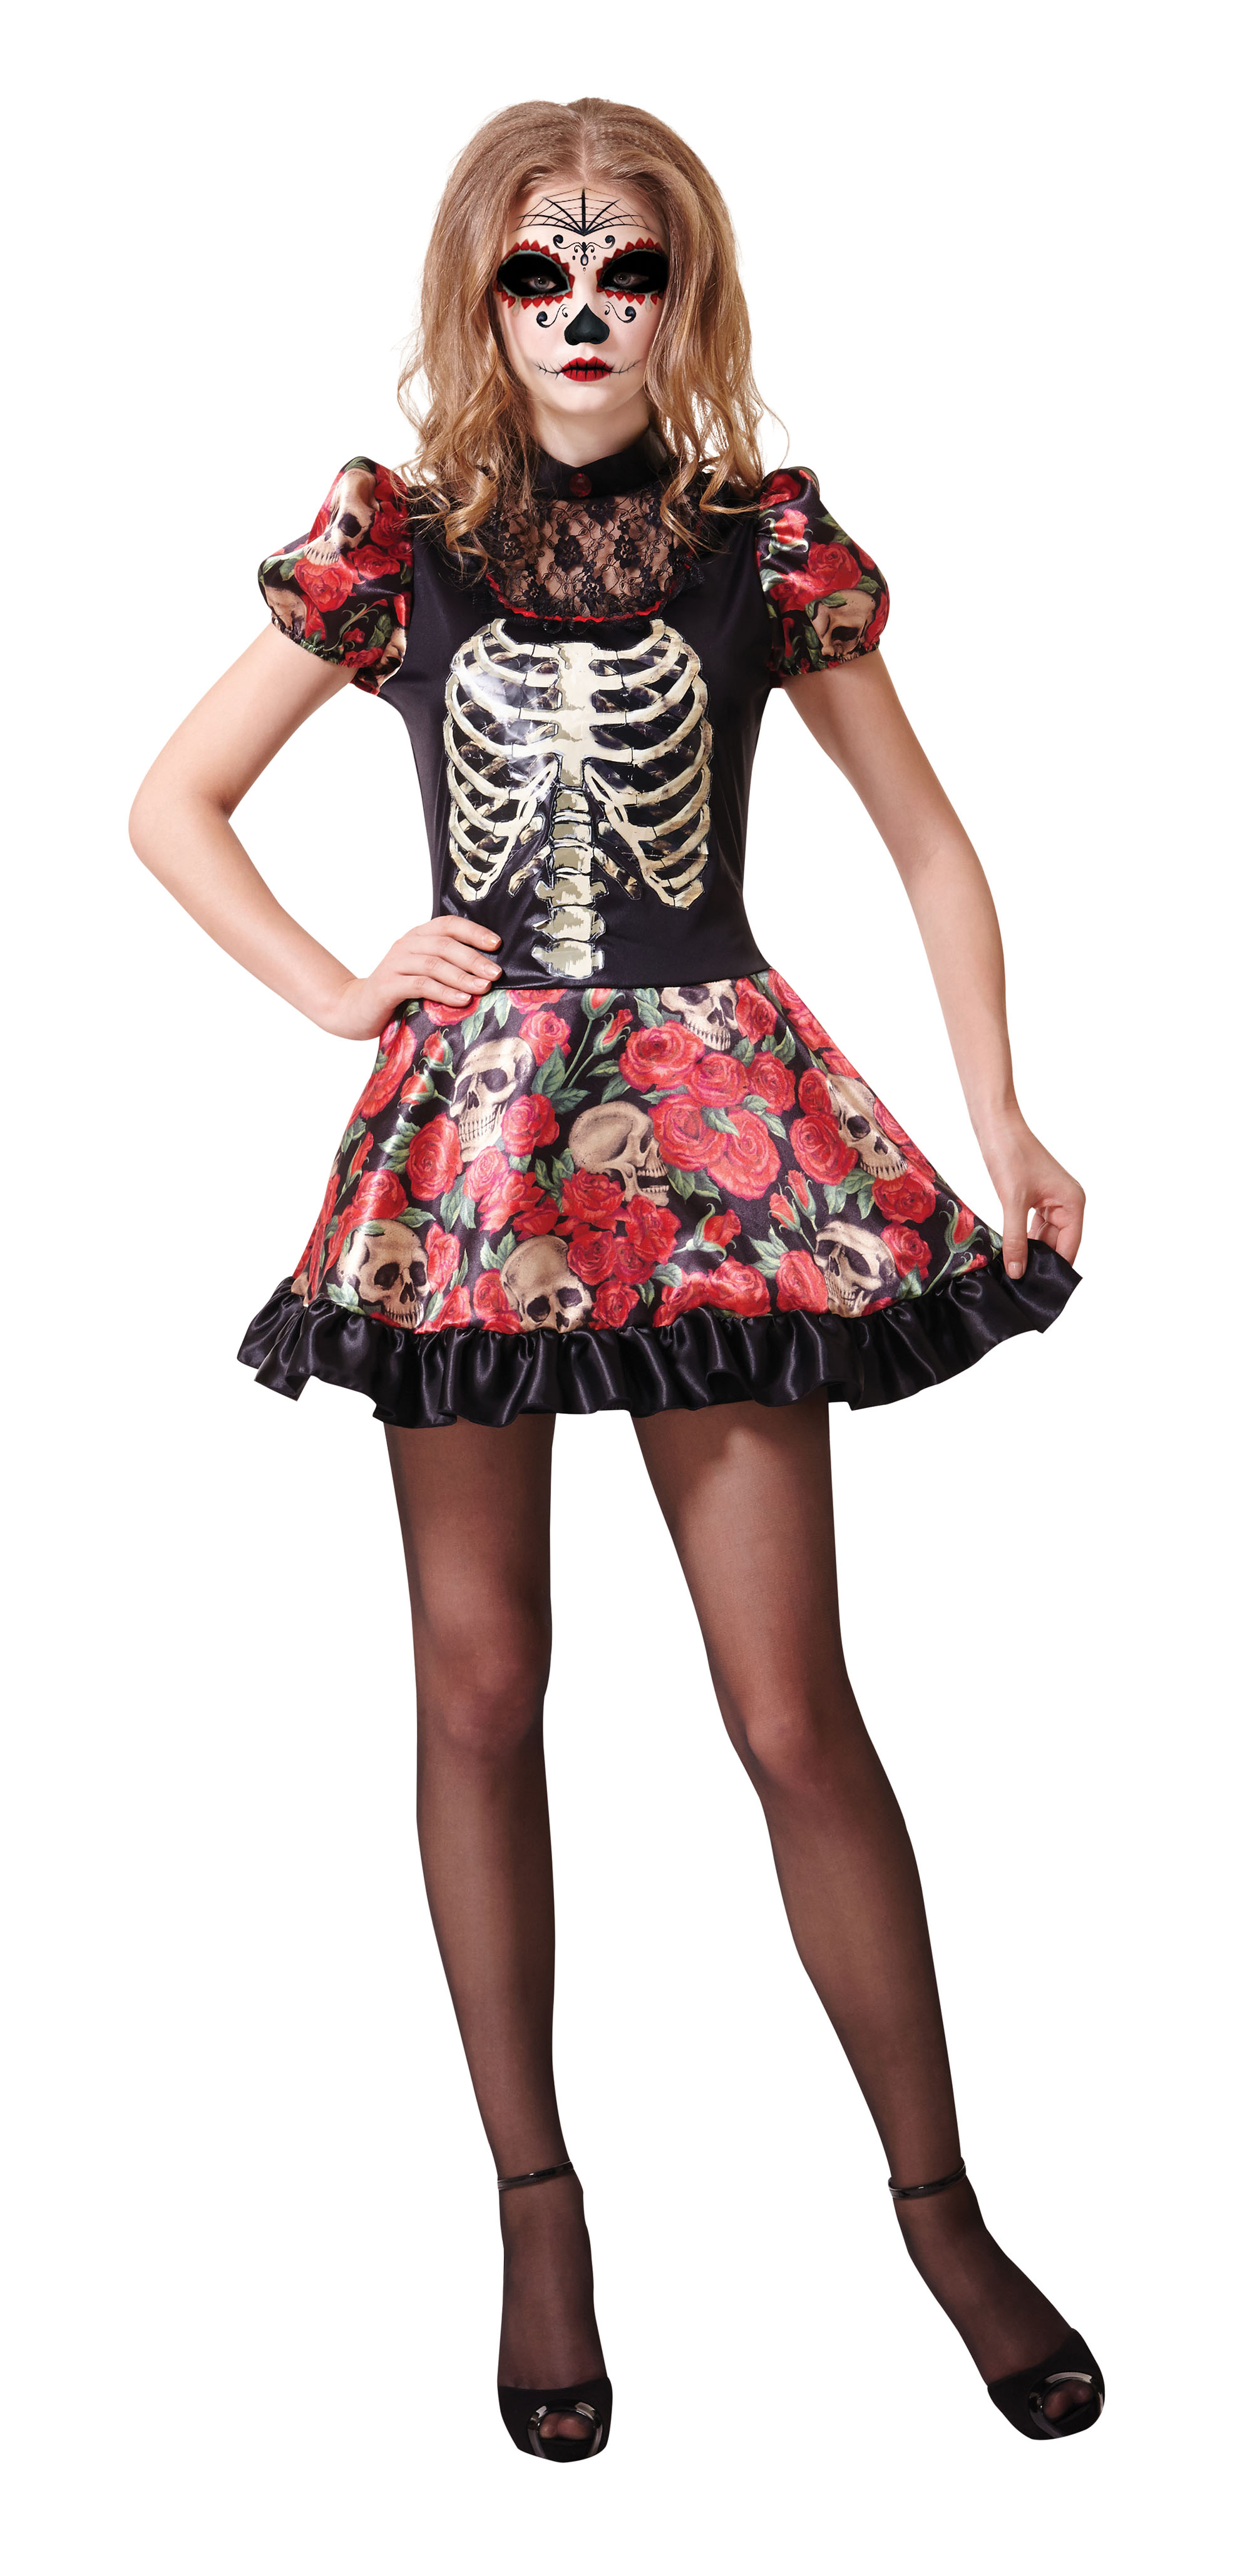 Halloween Day of the Dead Doll Costume